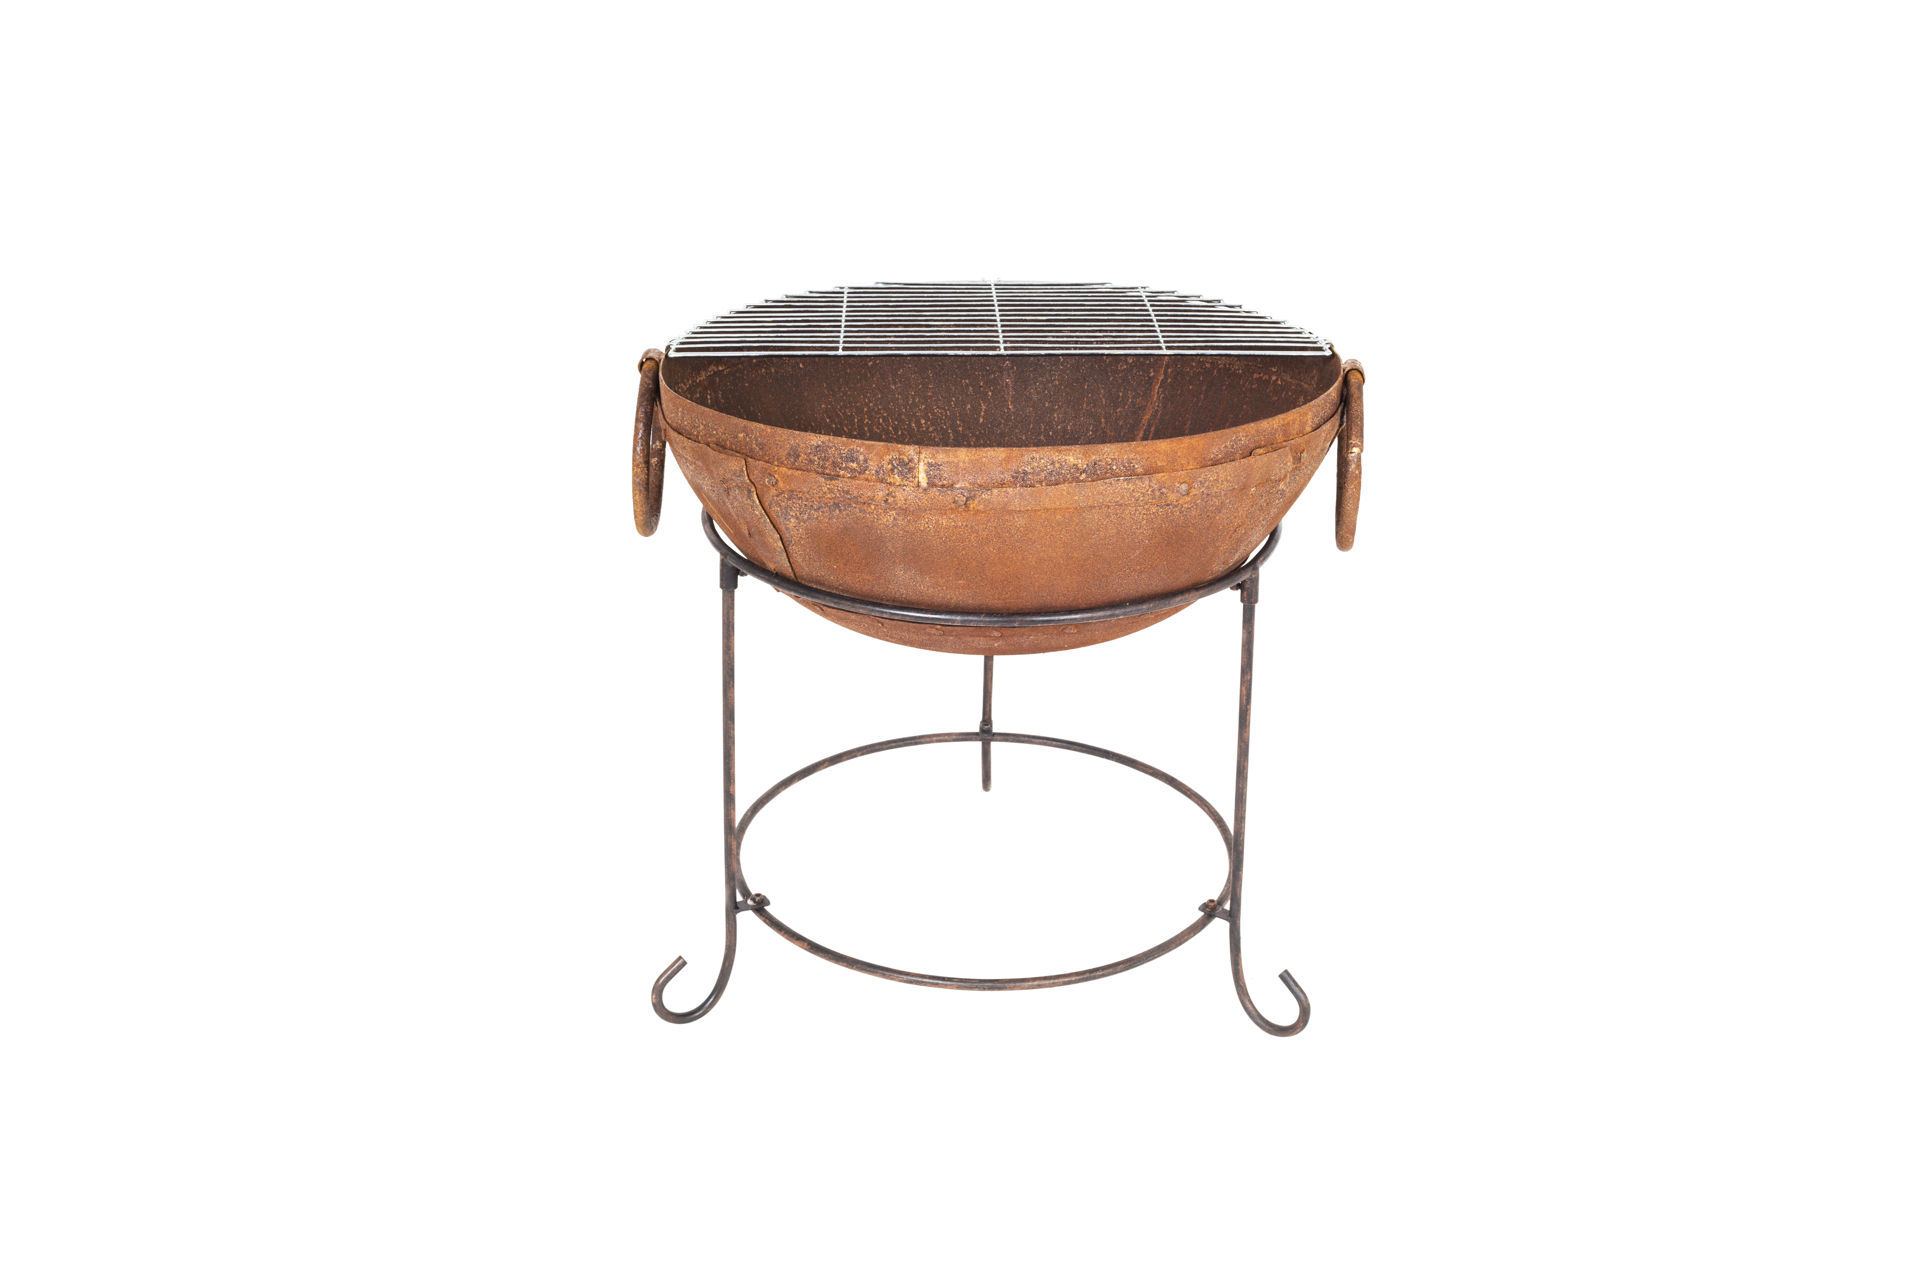 """Picture of FIREPIT - RUSTIC CLAY """"ZANGE INDIAN"""" (H21.5""""x W19.5""""x L19.5"""")"""